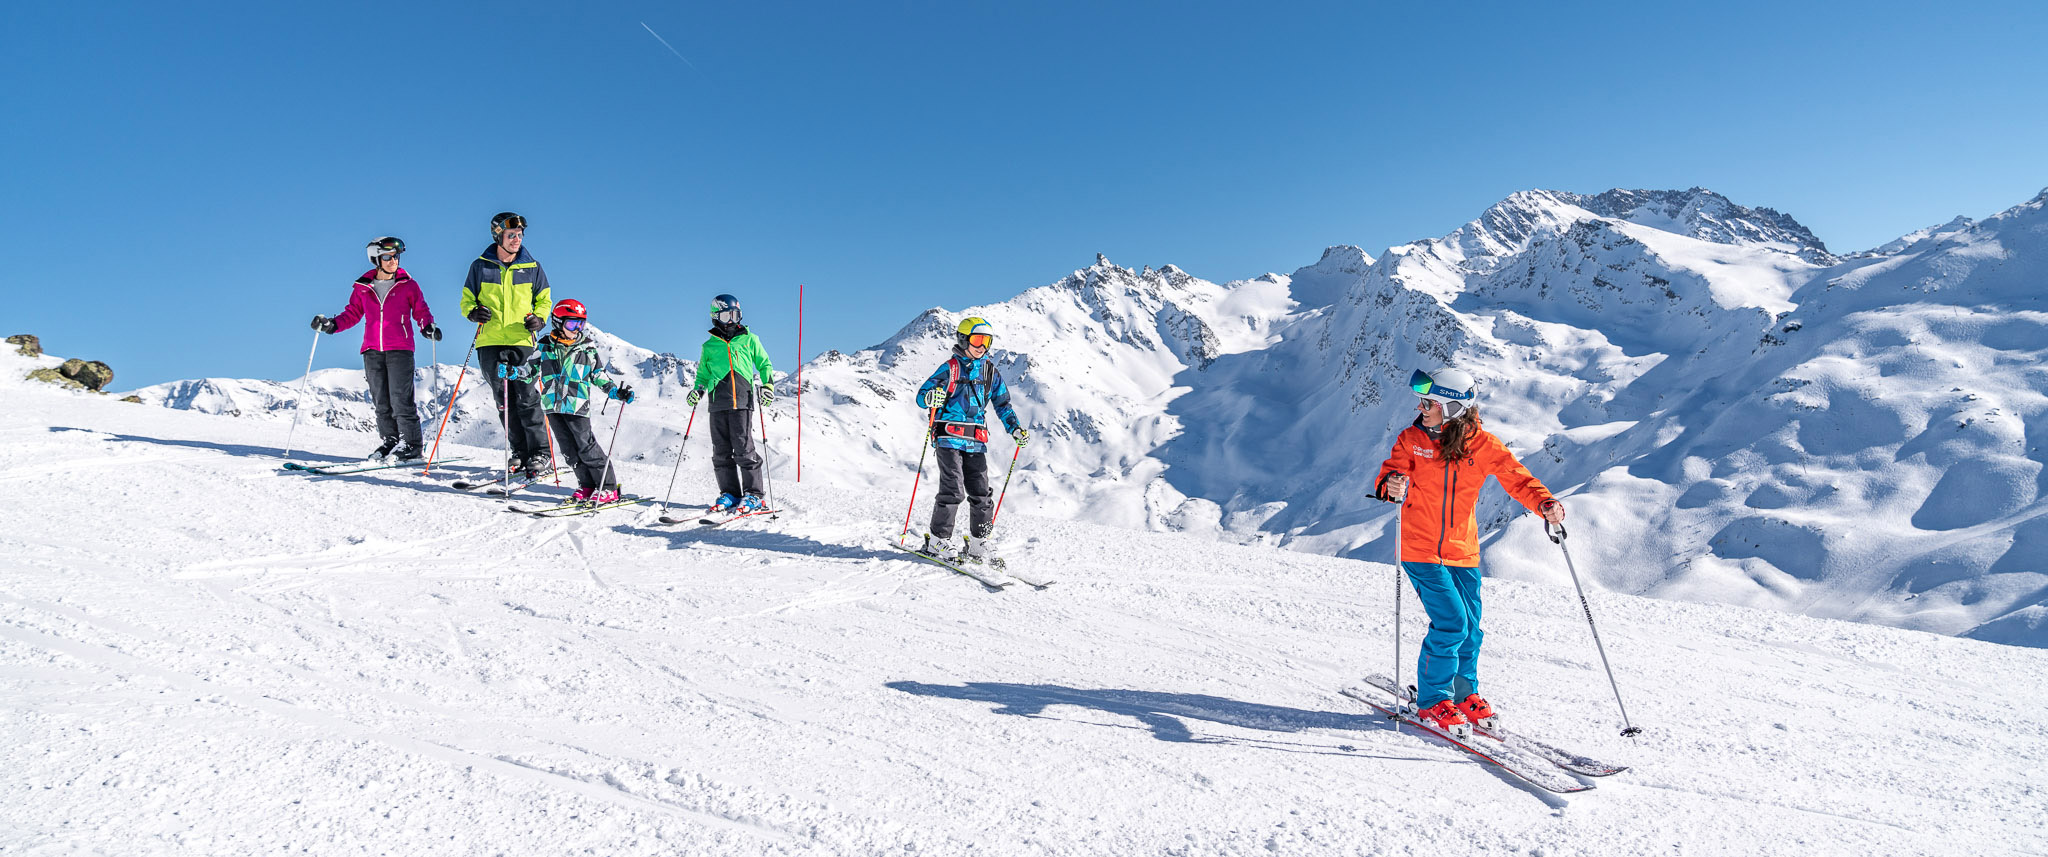 Oxygene Private lesson in Val Thorens